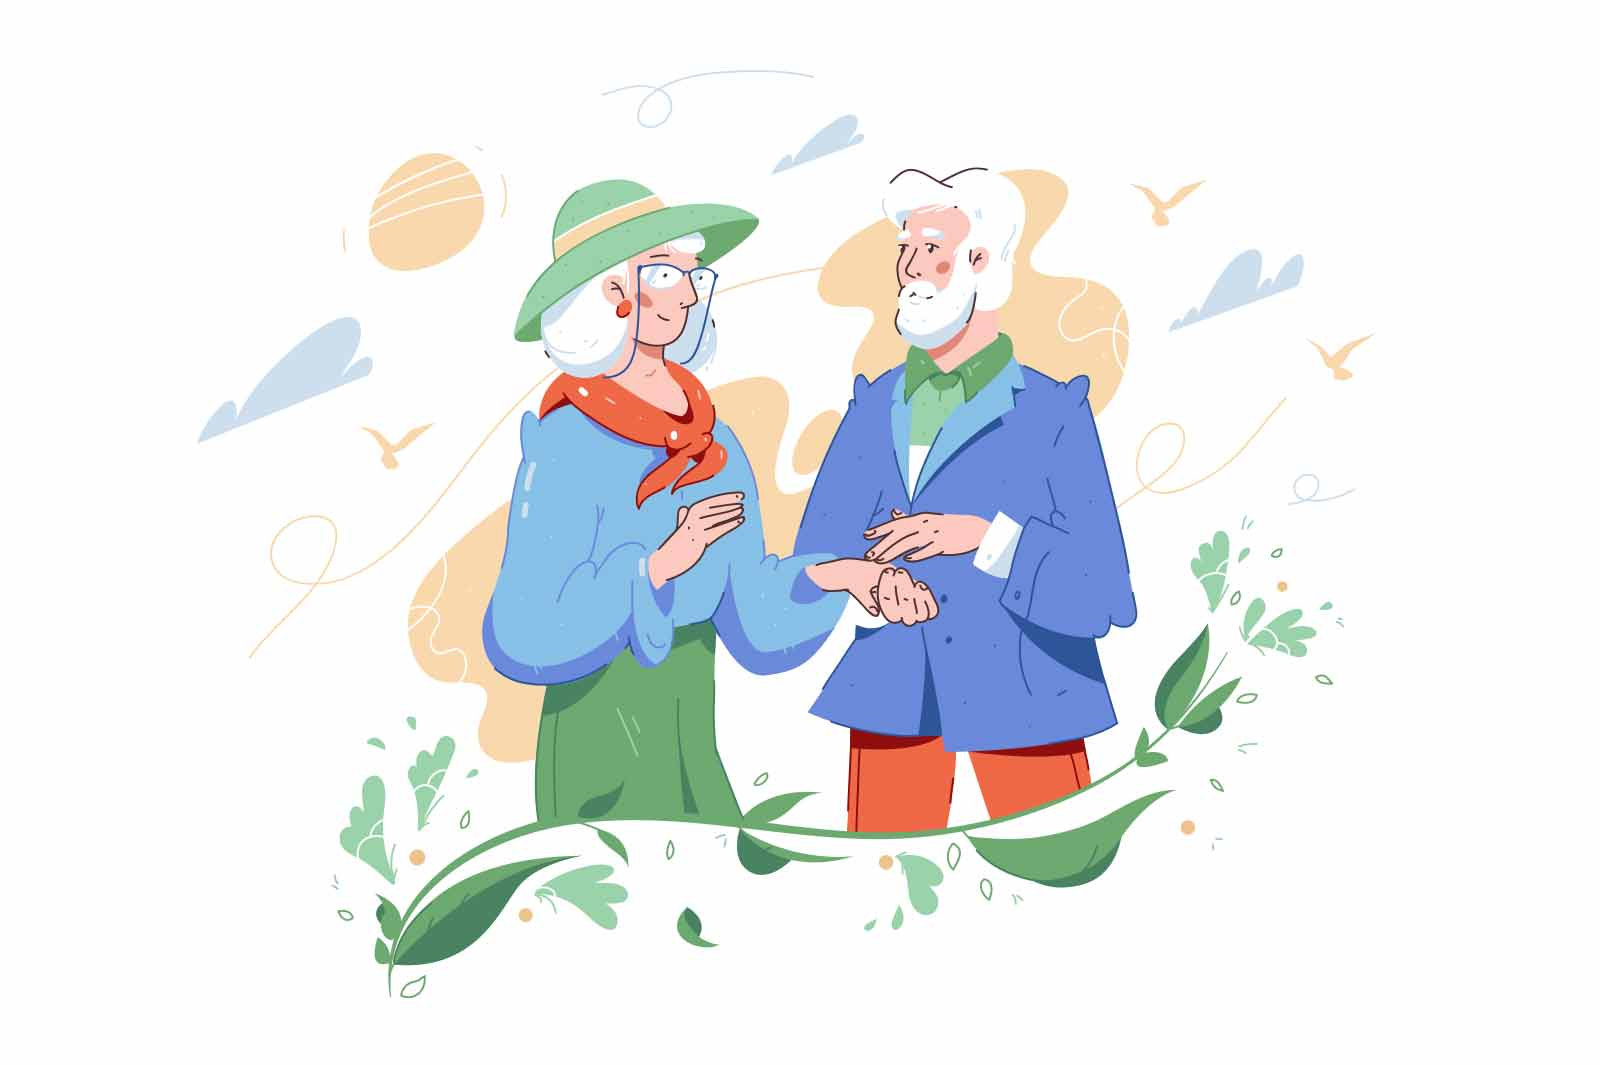 Happy senior couple holding hands vector illustration. Elderly married man and woman on nature flat style. Relationship, marriage concept